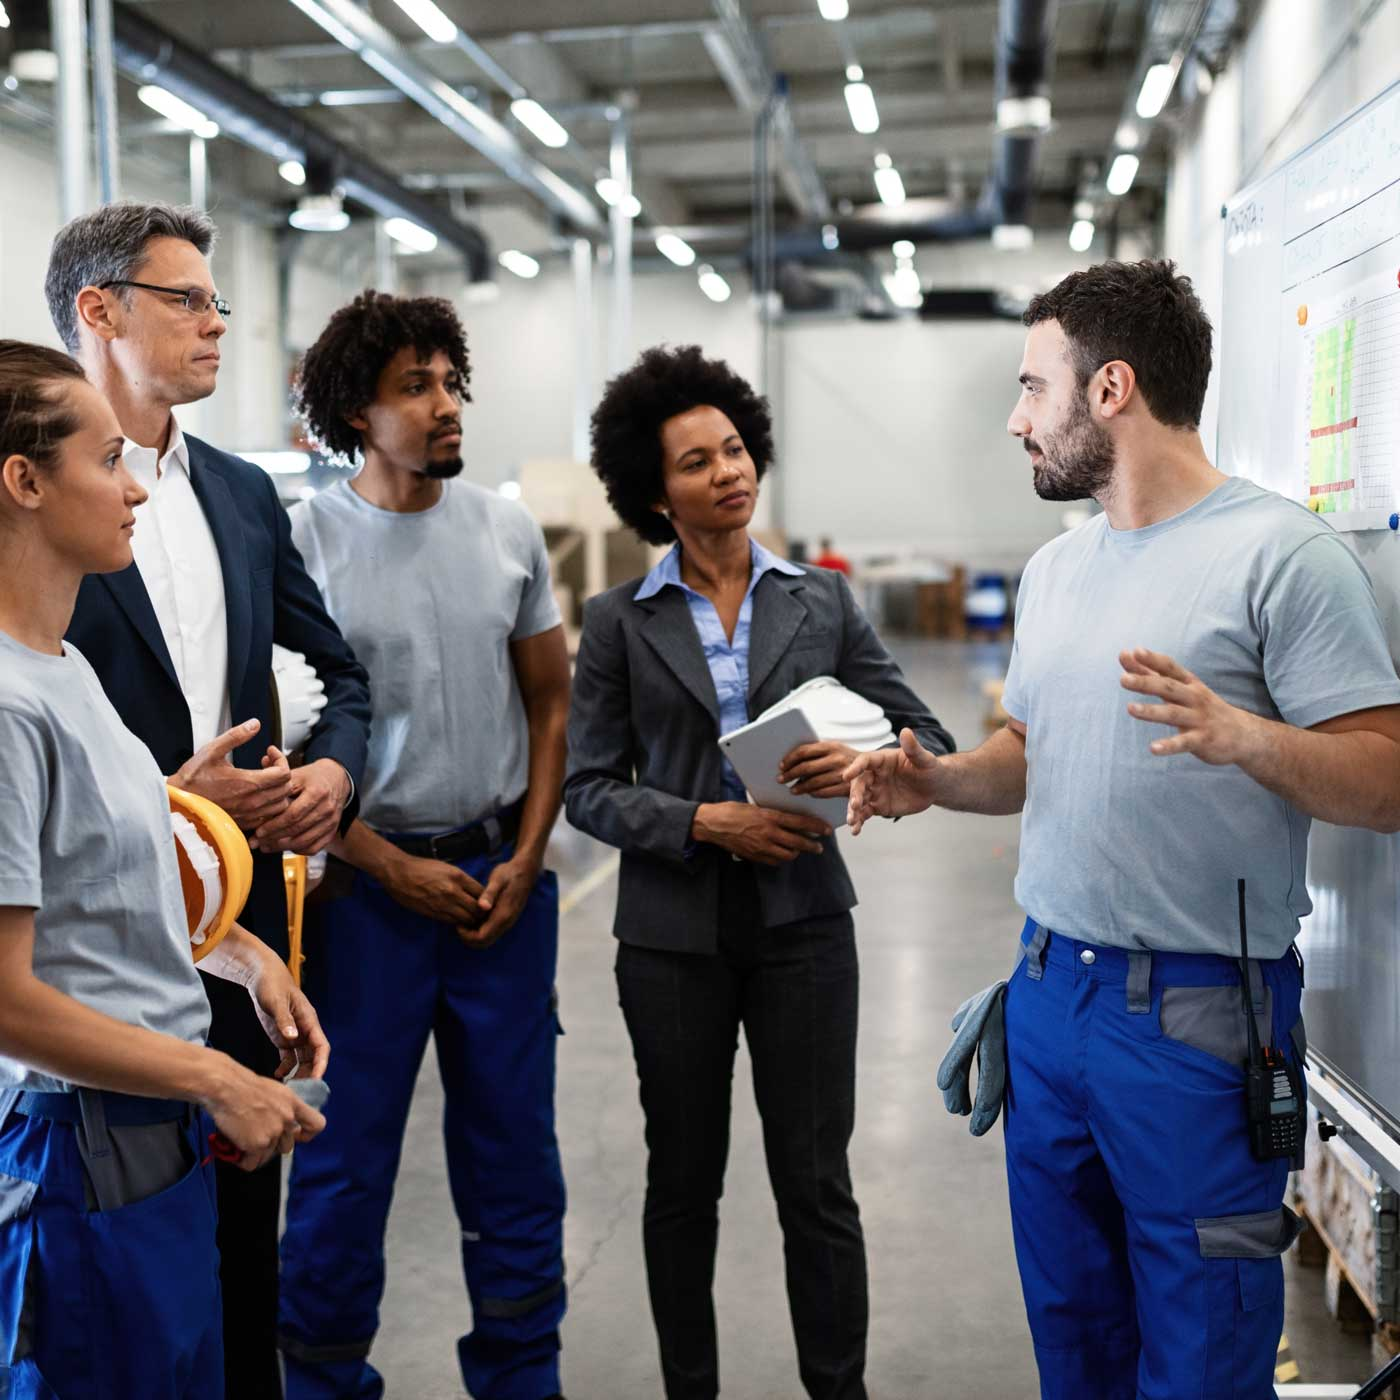 A group of workers in a warehouse having a standing meeting.